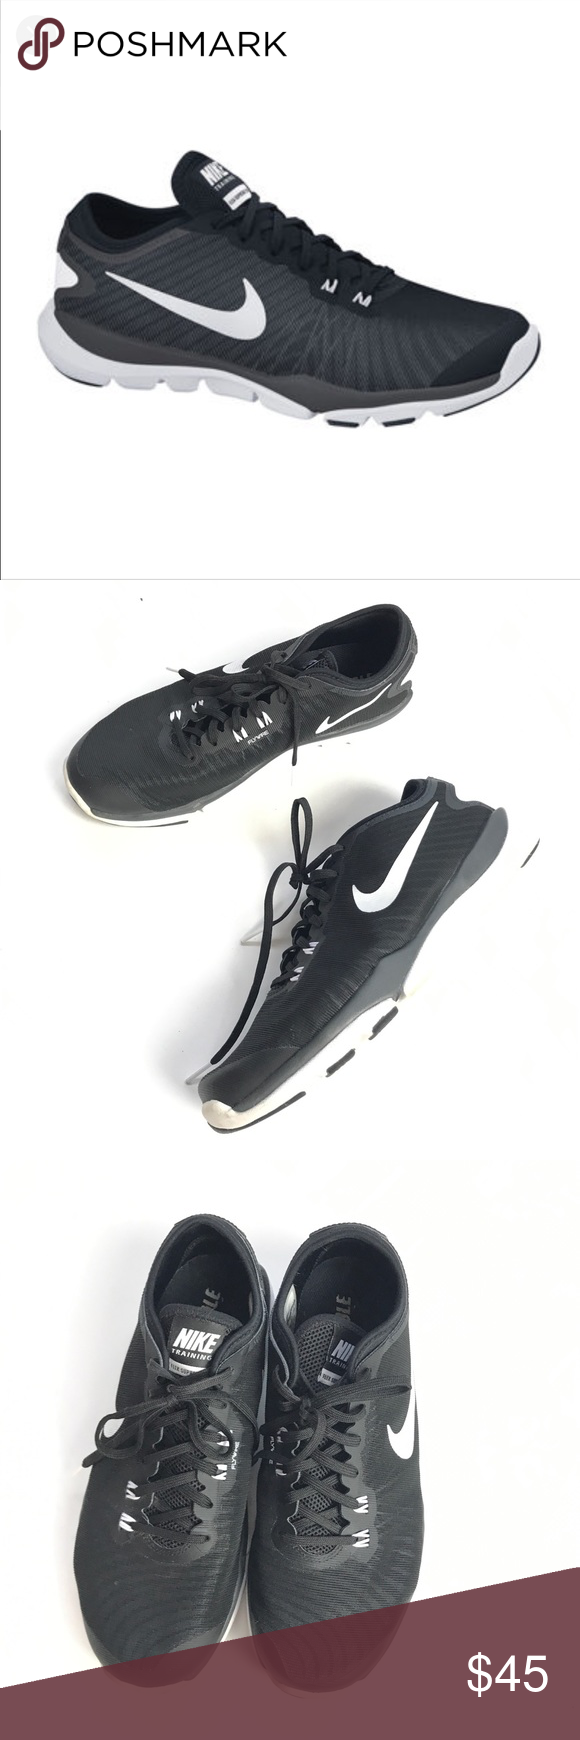 be67a3c08538 Nike Flex supreme TR4 running shoes black Women s Nike Flex Supreme TR4  Athletic Training Shoes Style